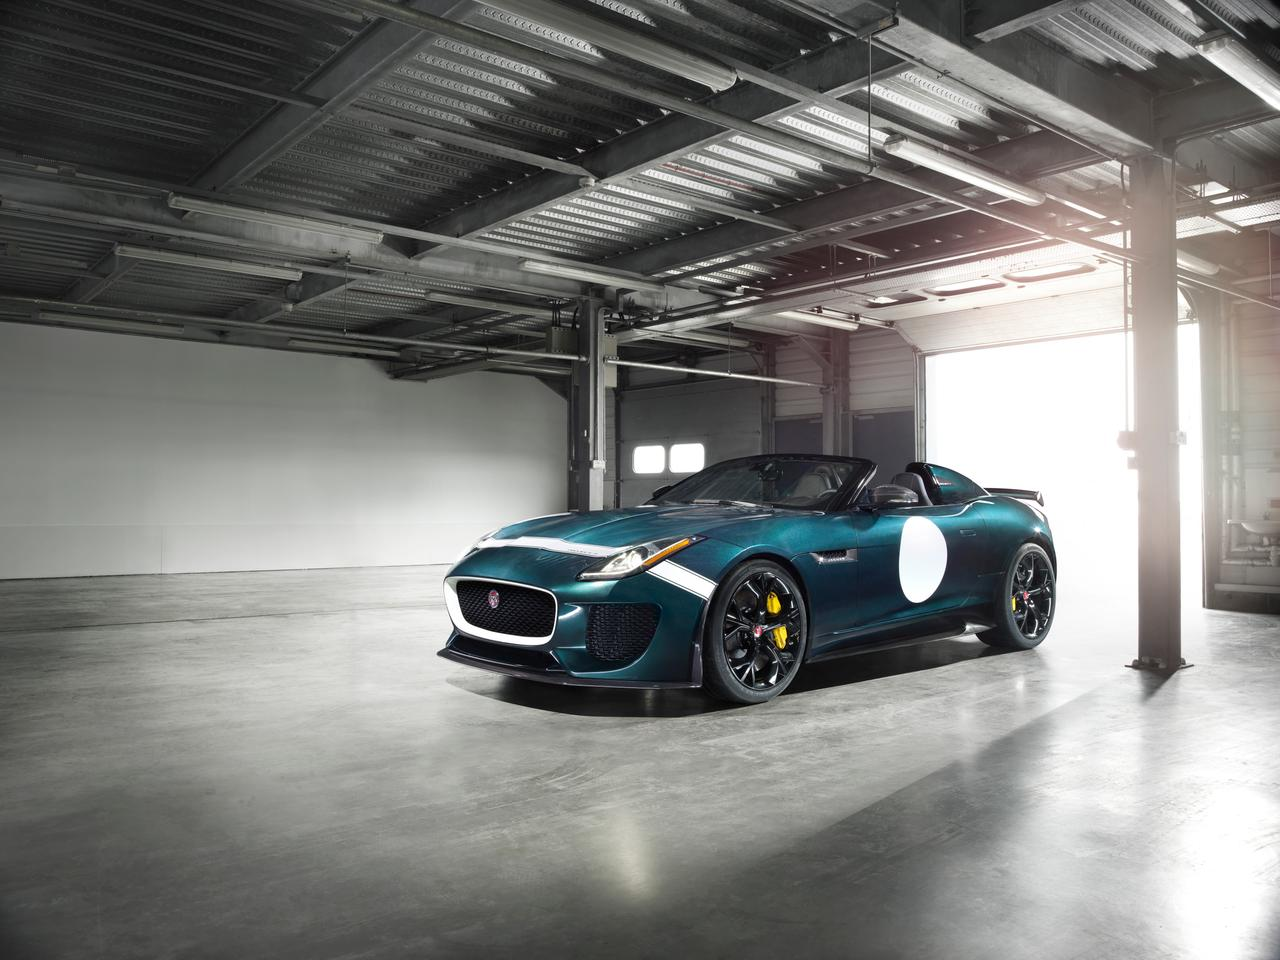 The Jaguar F-Type Project 7 is the production version of last year's concept